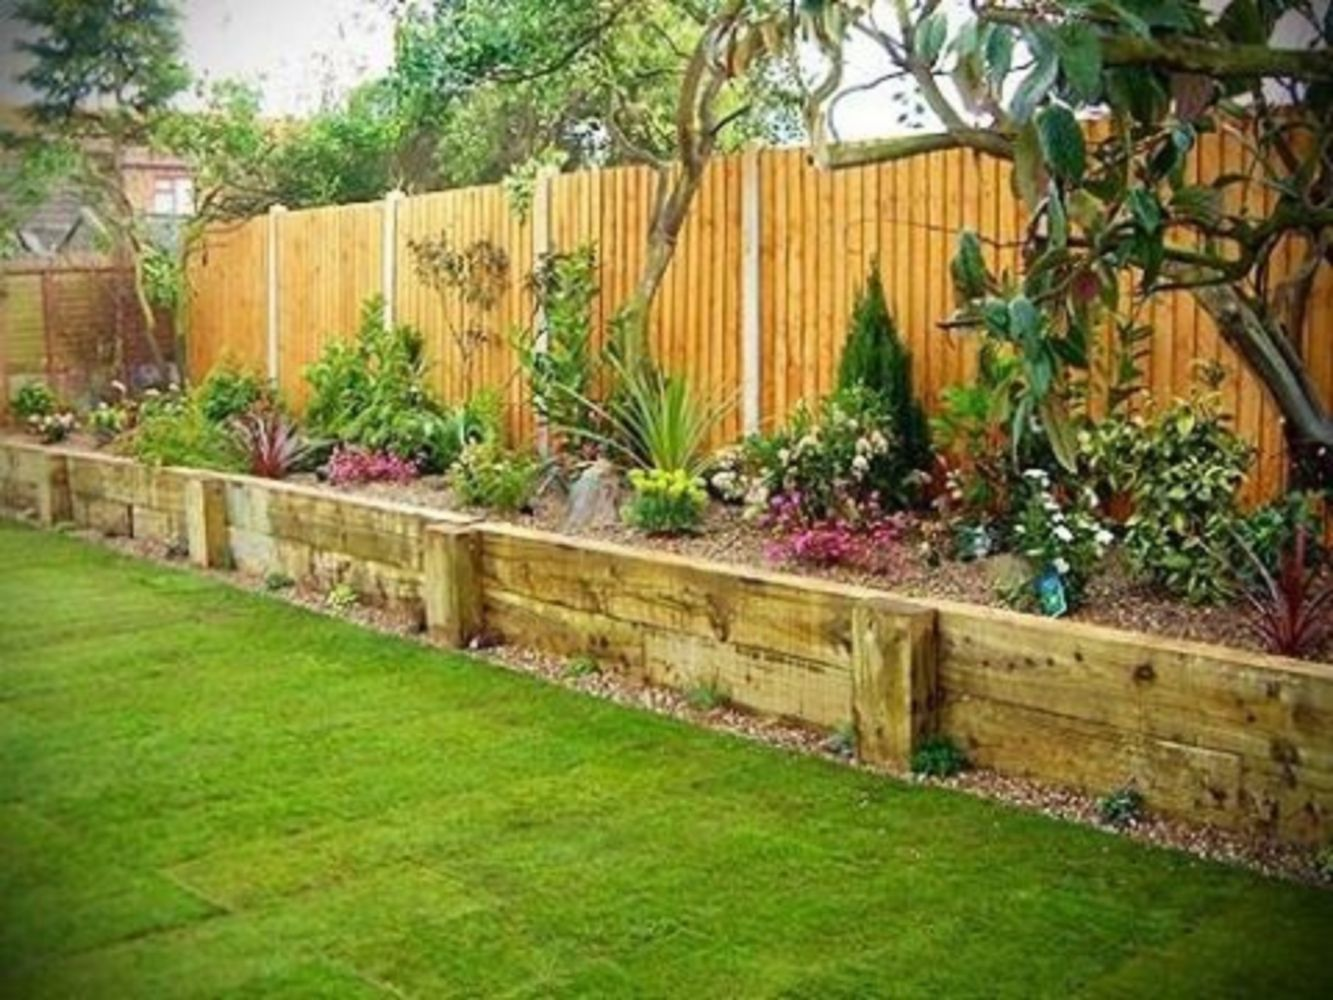 60 Cheap DIY Privacy Fence Ideas | Diy privacy fence, Privacy fences ...